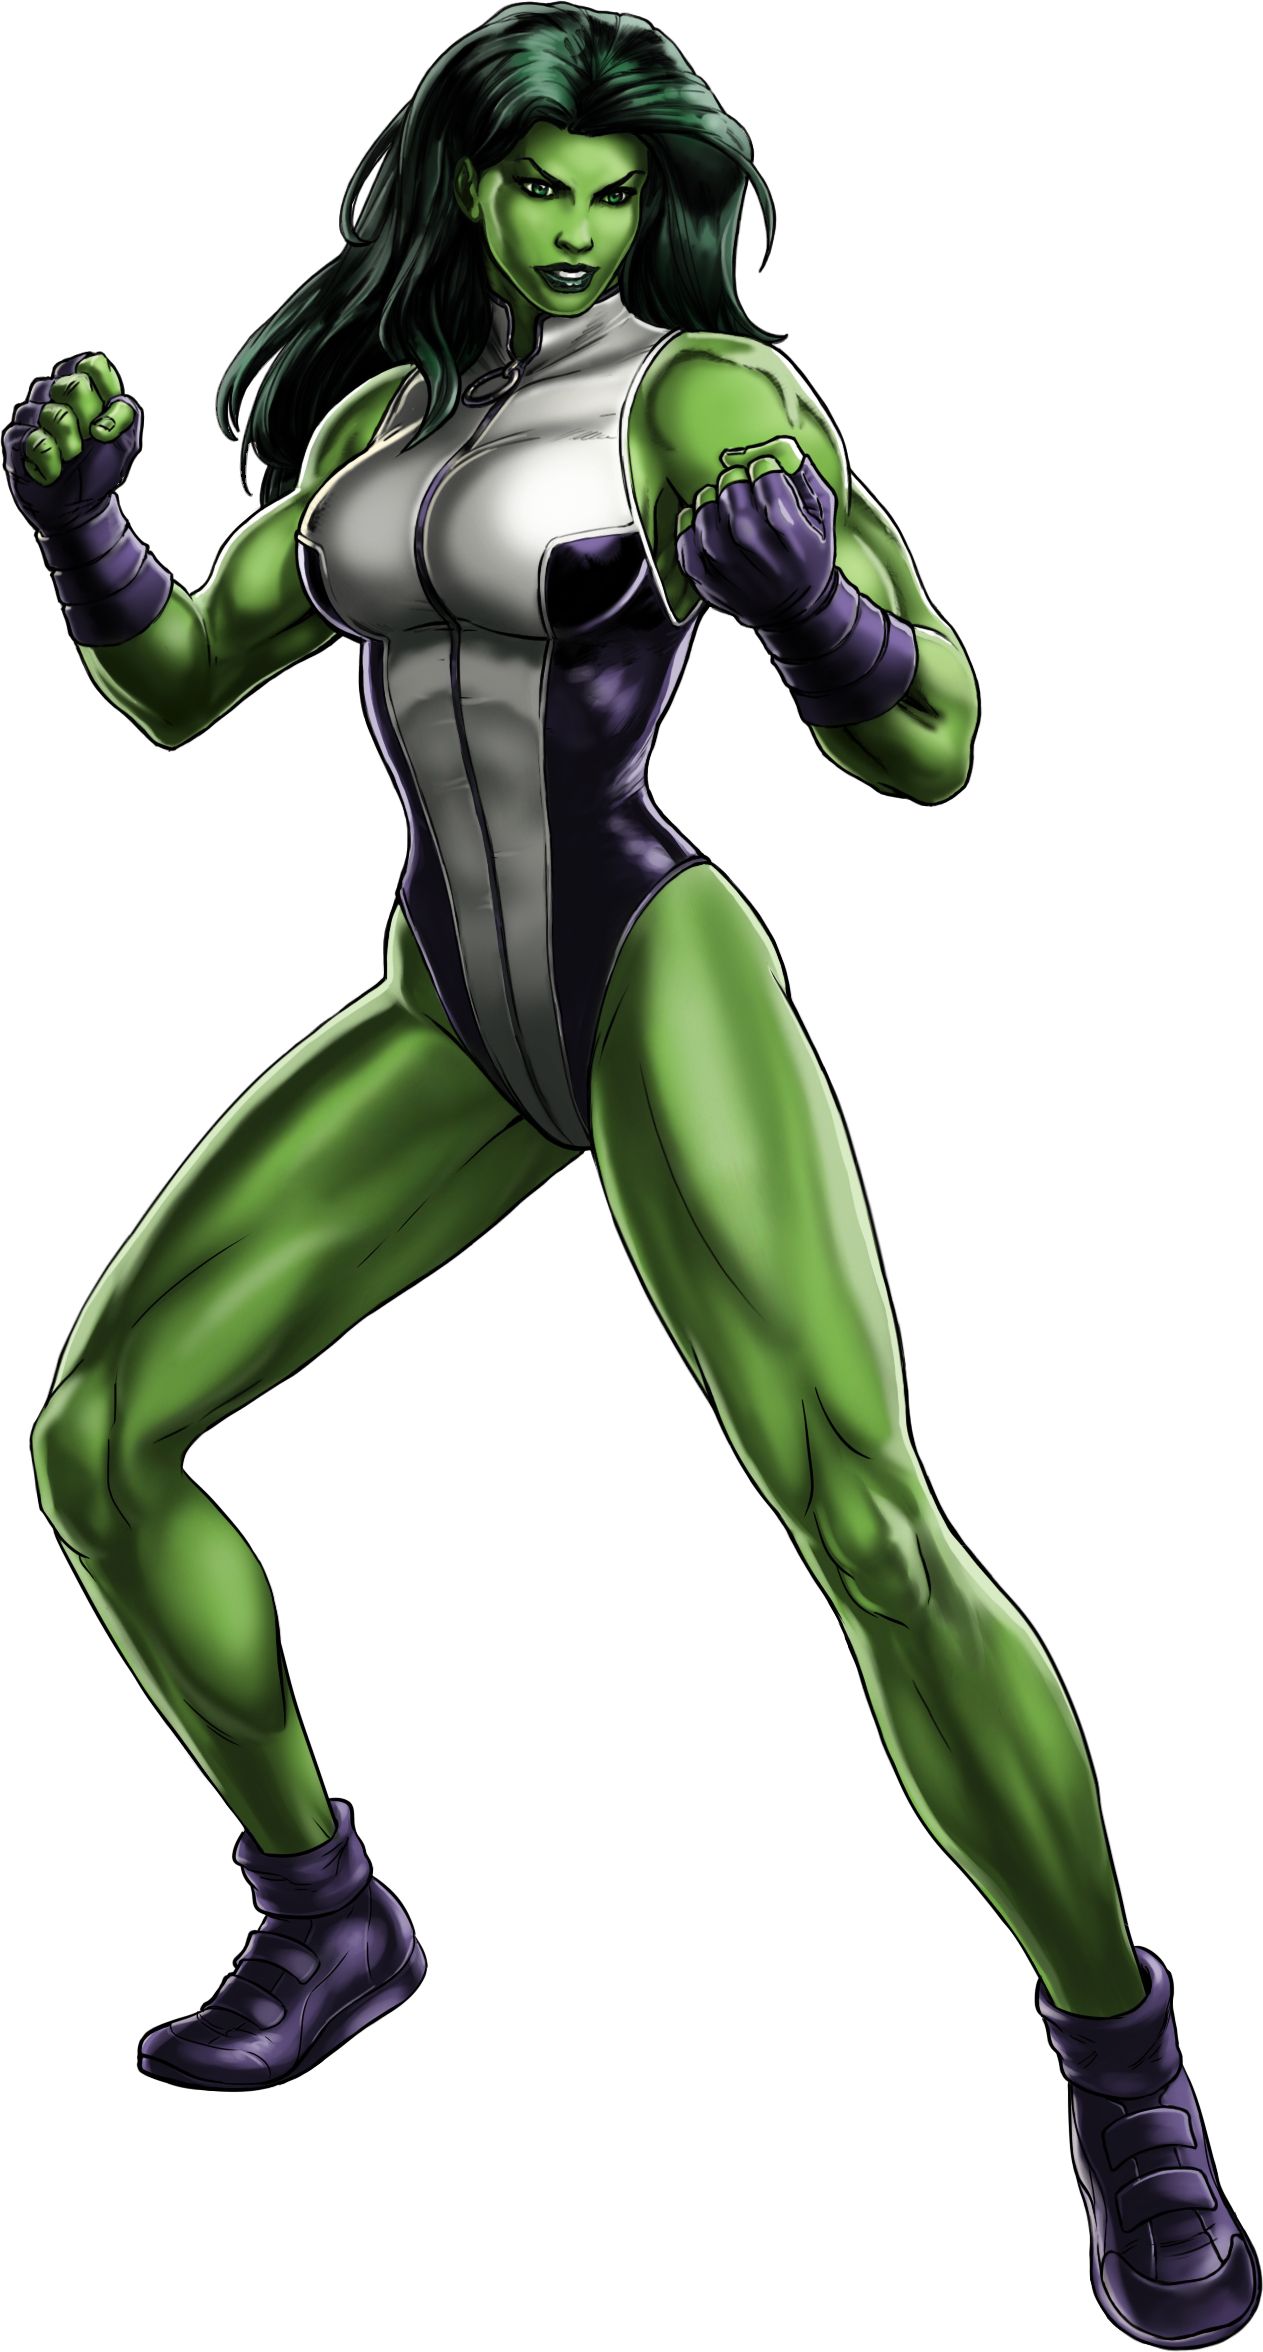 Image - She-Hulk Portrait Art.png | Marvel: Avengers Alliance Wiki | FANDOM  powered by Wikia - She Hulk PNG